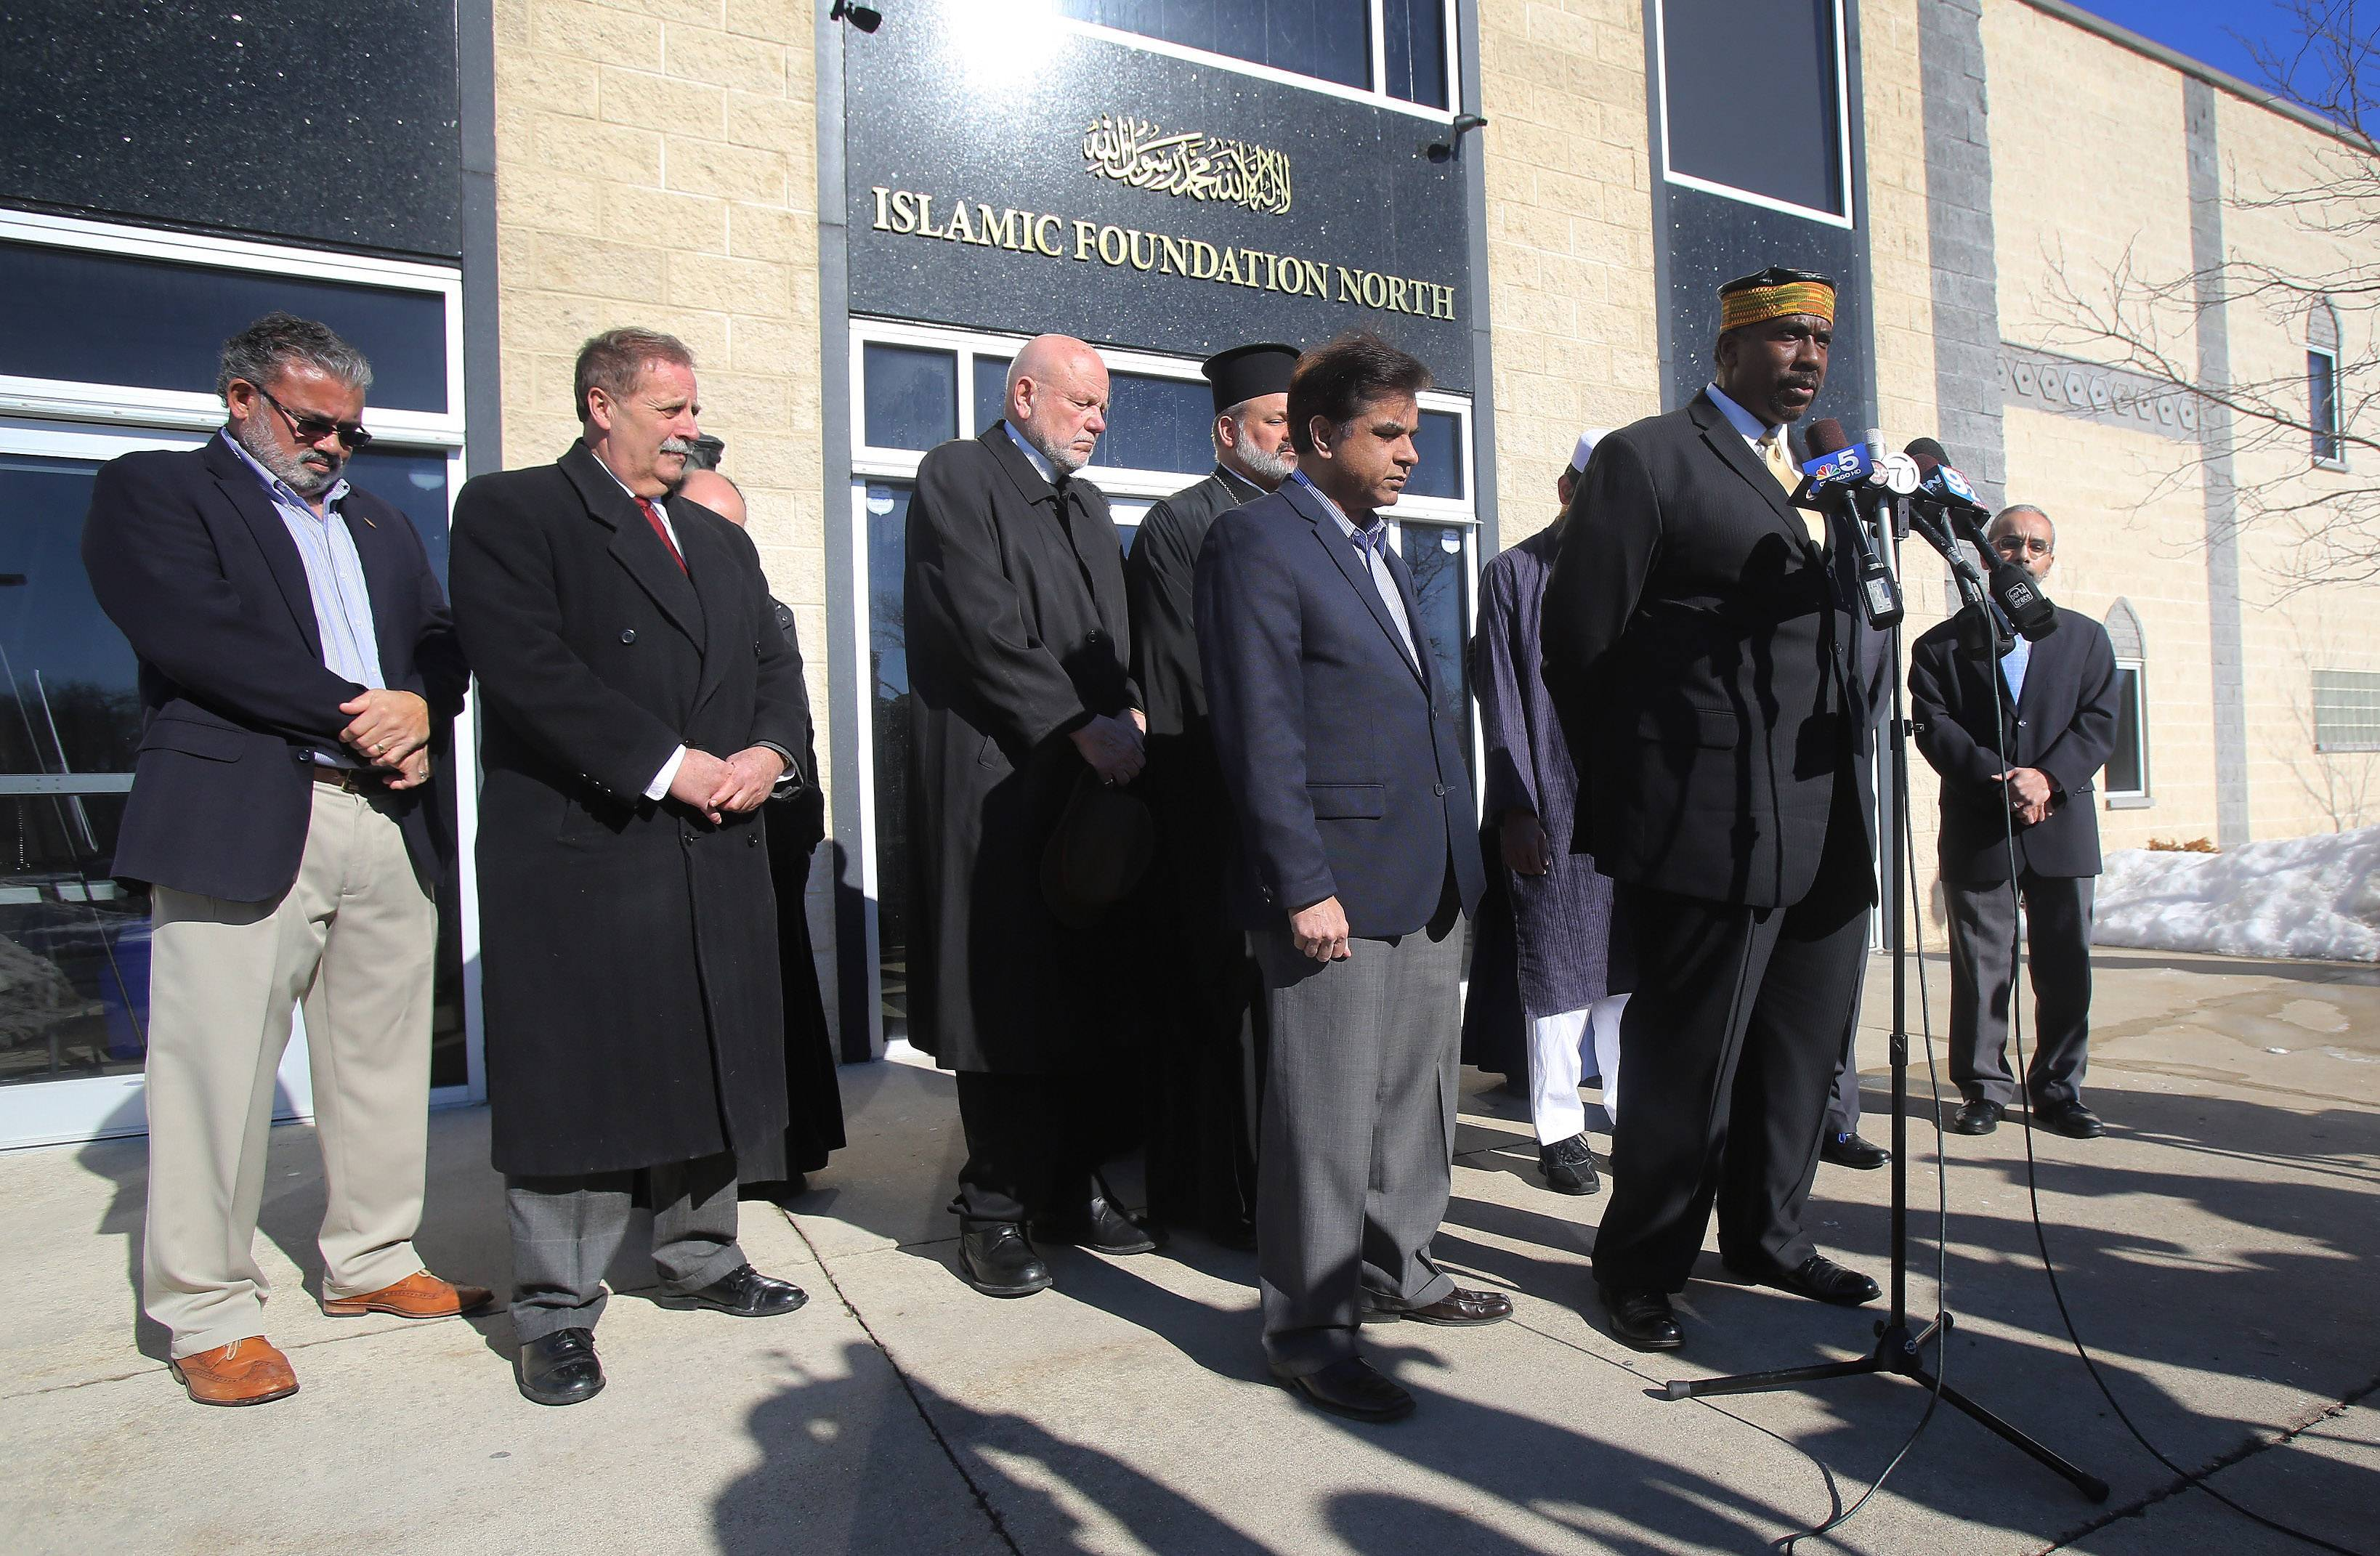 Imam Matthew Ramadan of the Council of Islamic Organizations of Greater Chicago joins other religious leaders in prayer at Islamic Foundation North during a news conference Wednesday to discuss vandalism of St. Demetrios Greek Orthodox Church and Islamic Foundation North in Waukegan. The graffiti was discovered at the church and mosque early Monday.